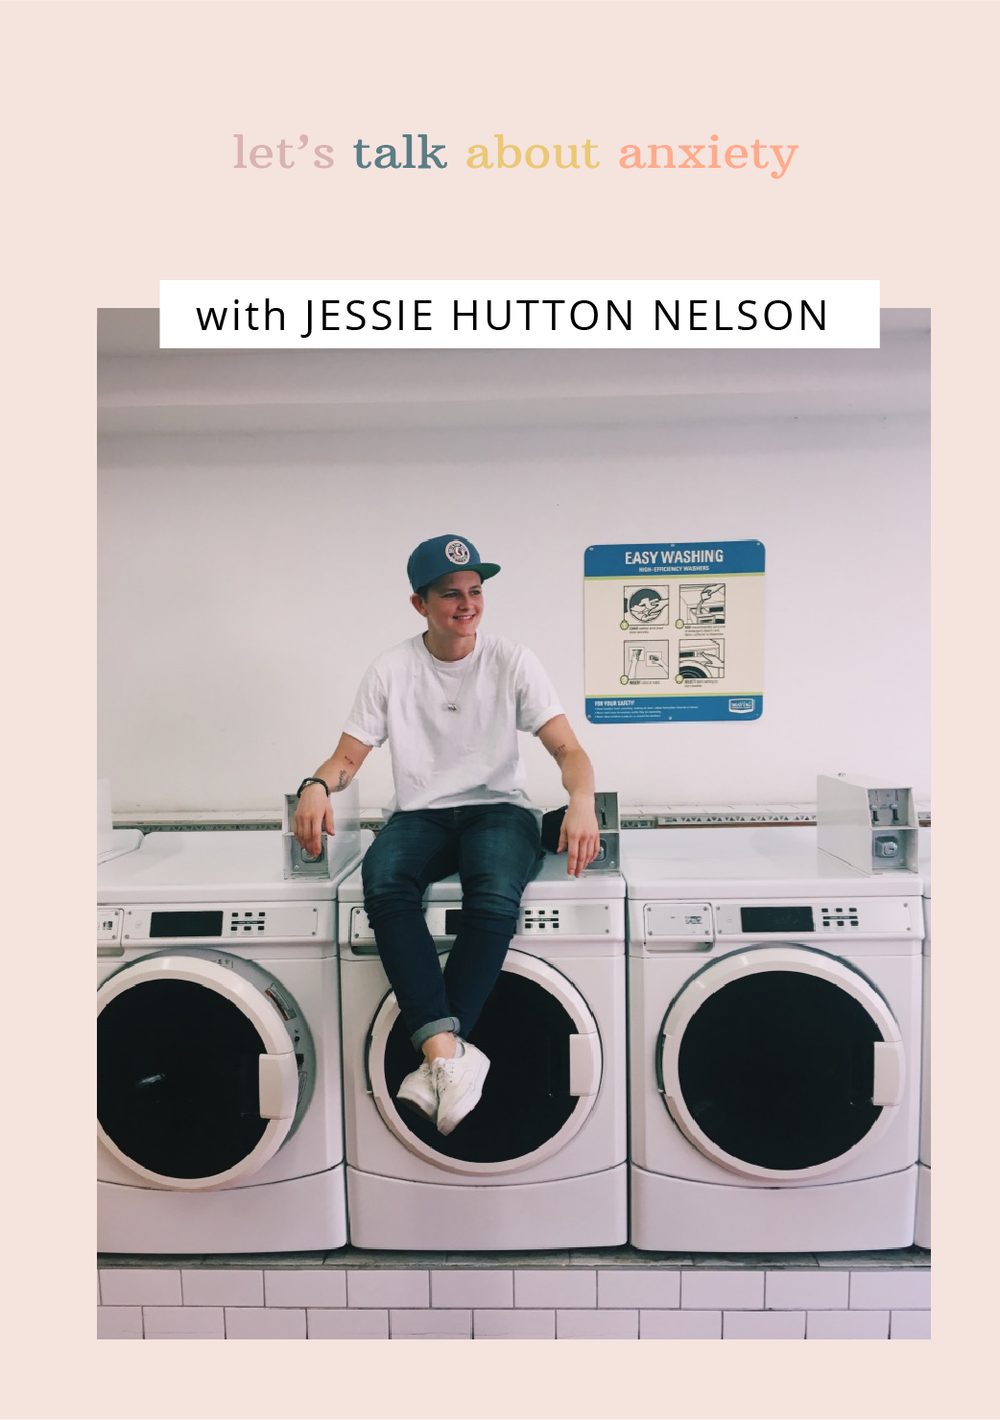 Let's Talk About Anxiety: Jessie Hutton Image